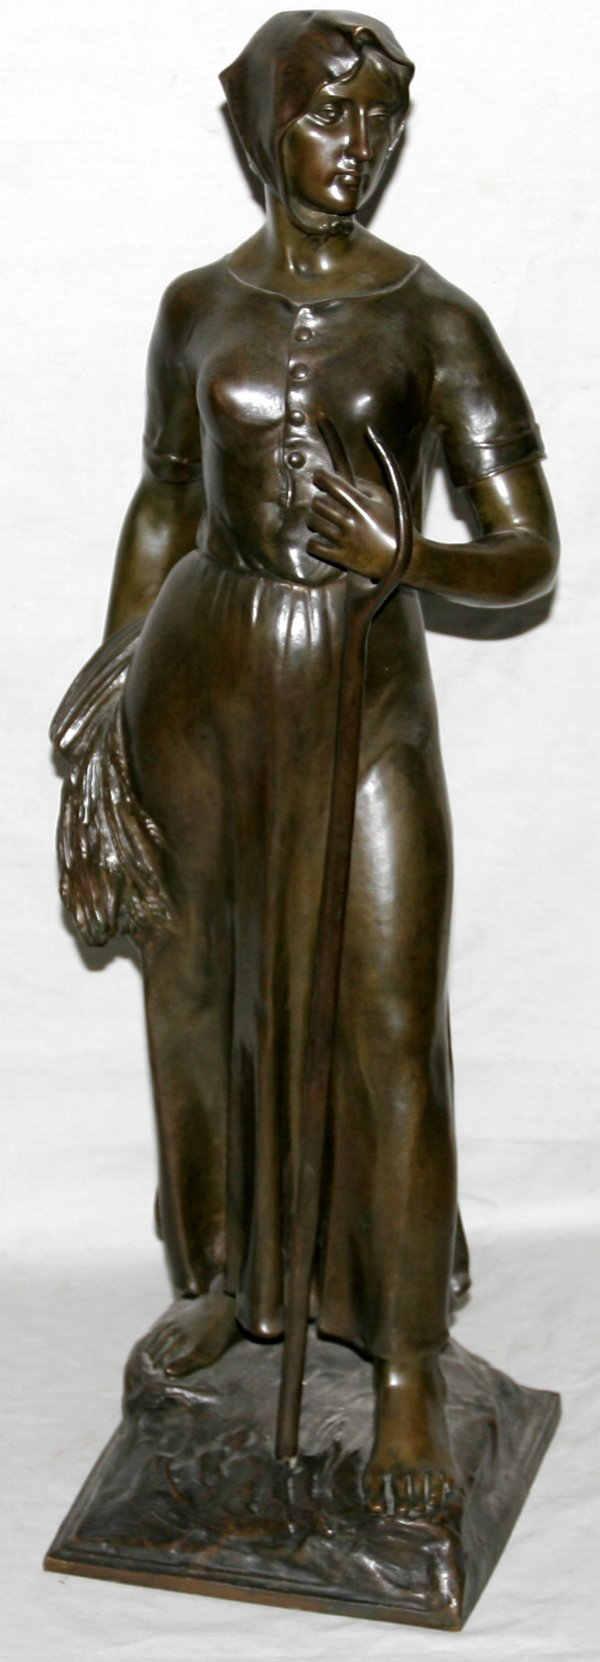 040033: FRENCH BRONZE SCULPTURE, WOMAN W/PITCH FORK